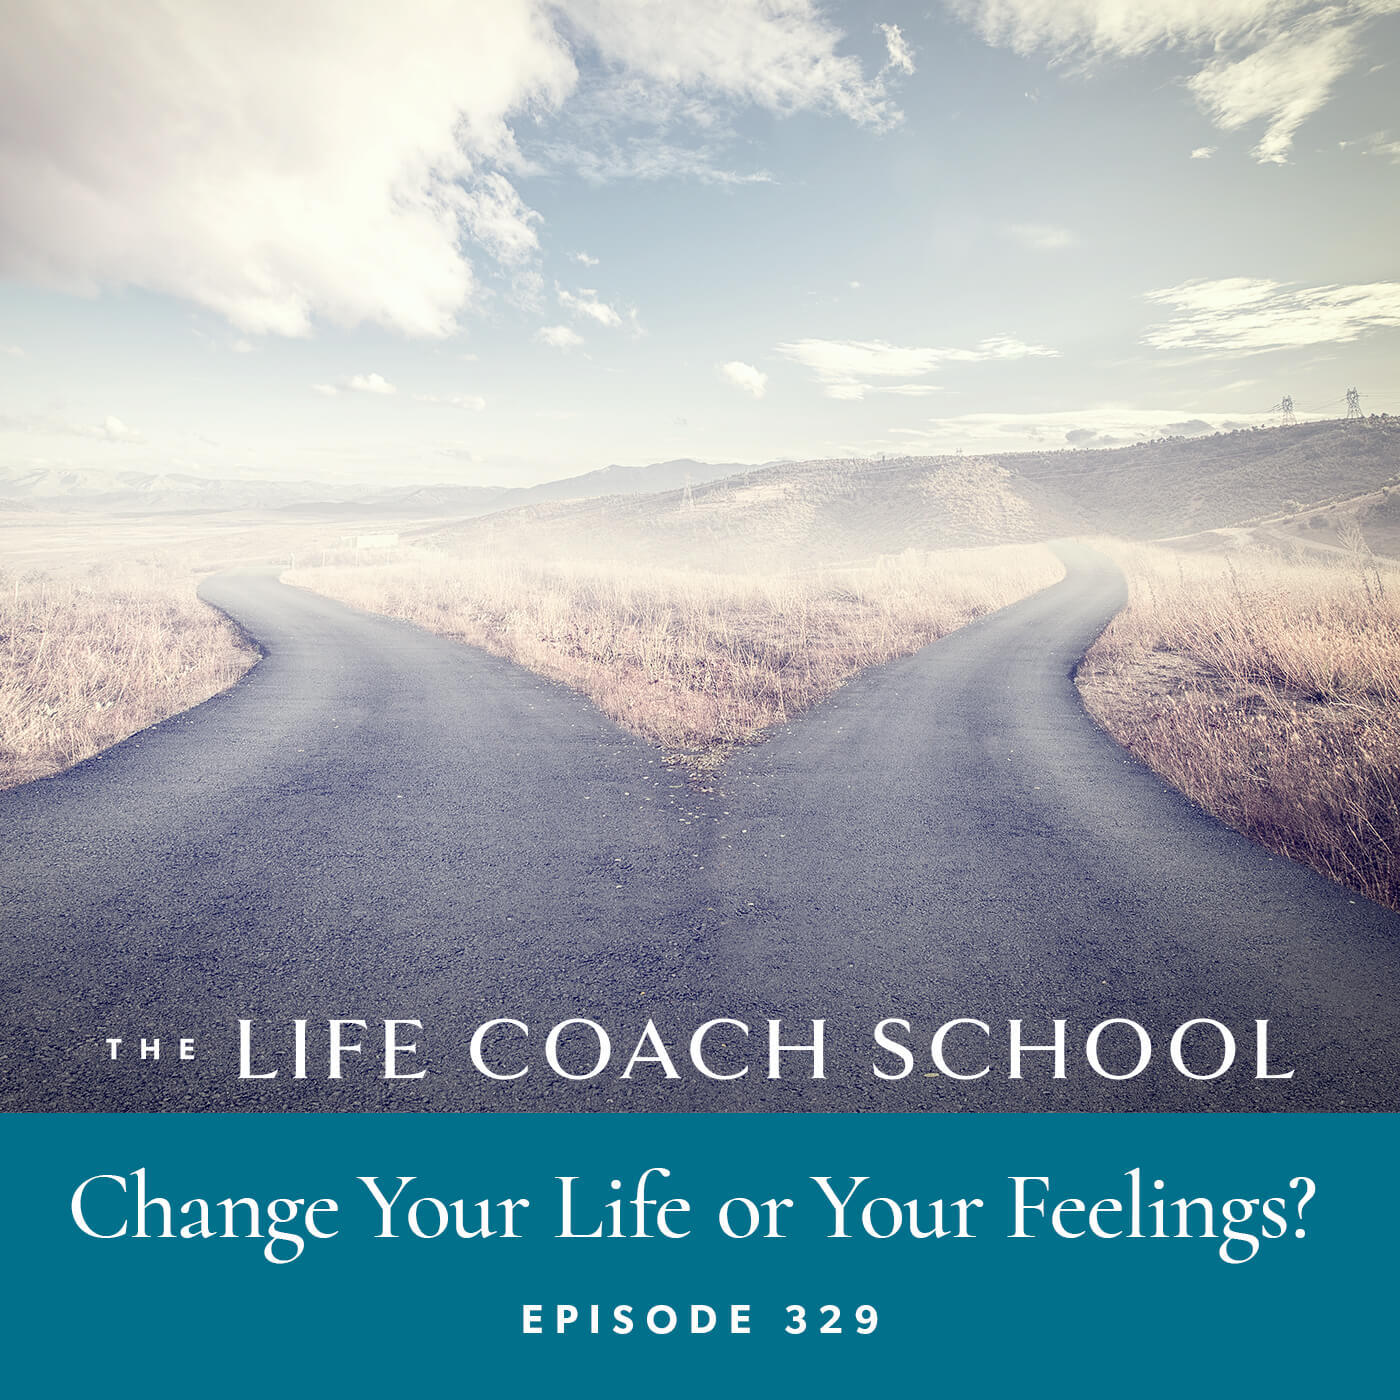 The Life Coach School Podcast with Brooke Castillo | Episode 329 | Change Your Life or Your Feelings?